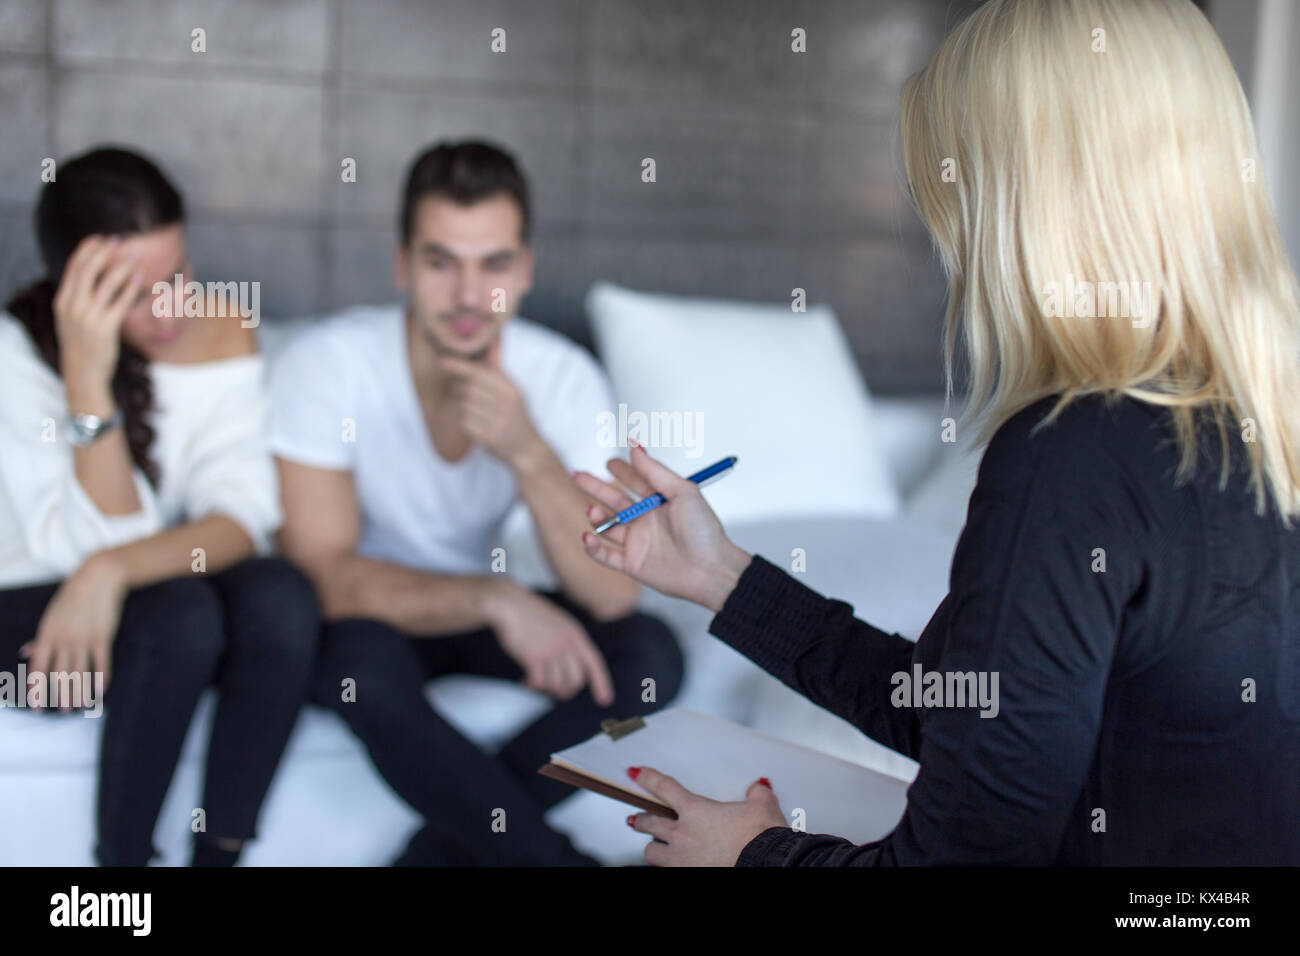 Blonde Therapist Discussing With Couple On Consulation Couple Stock